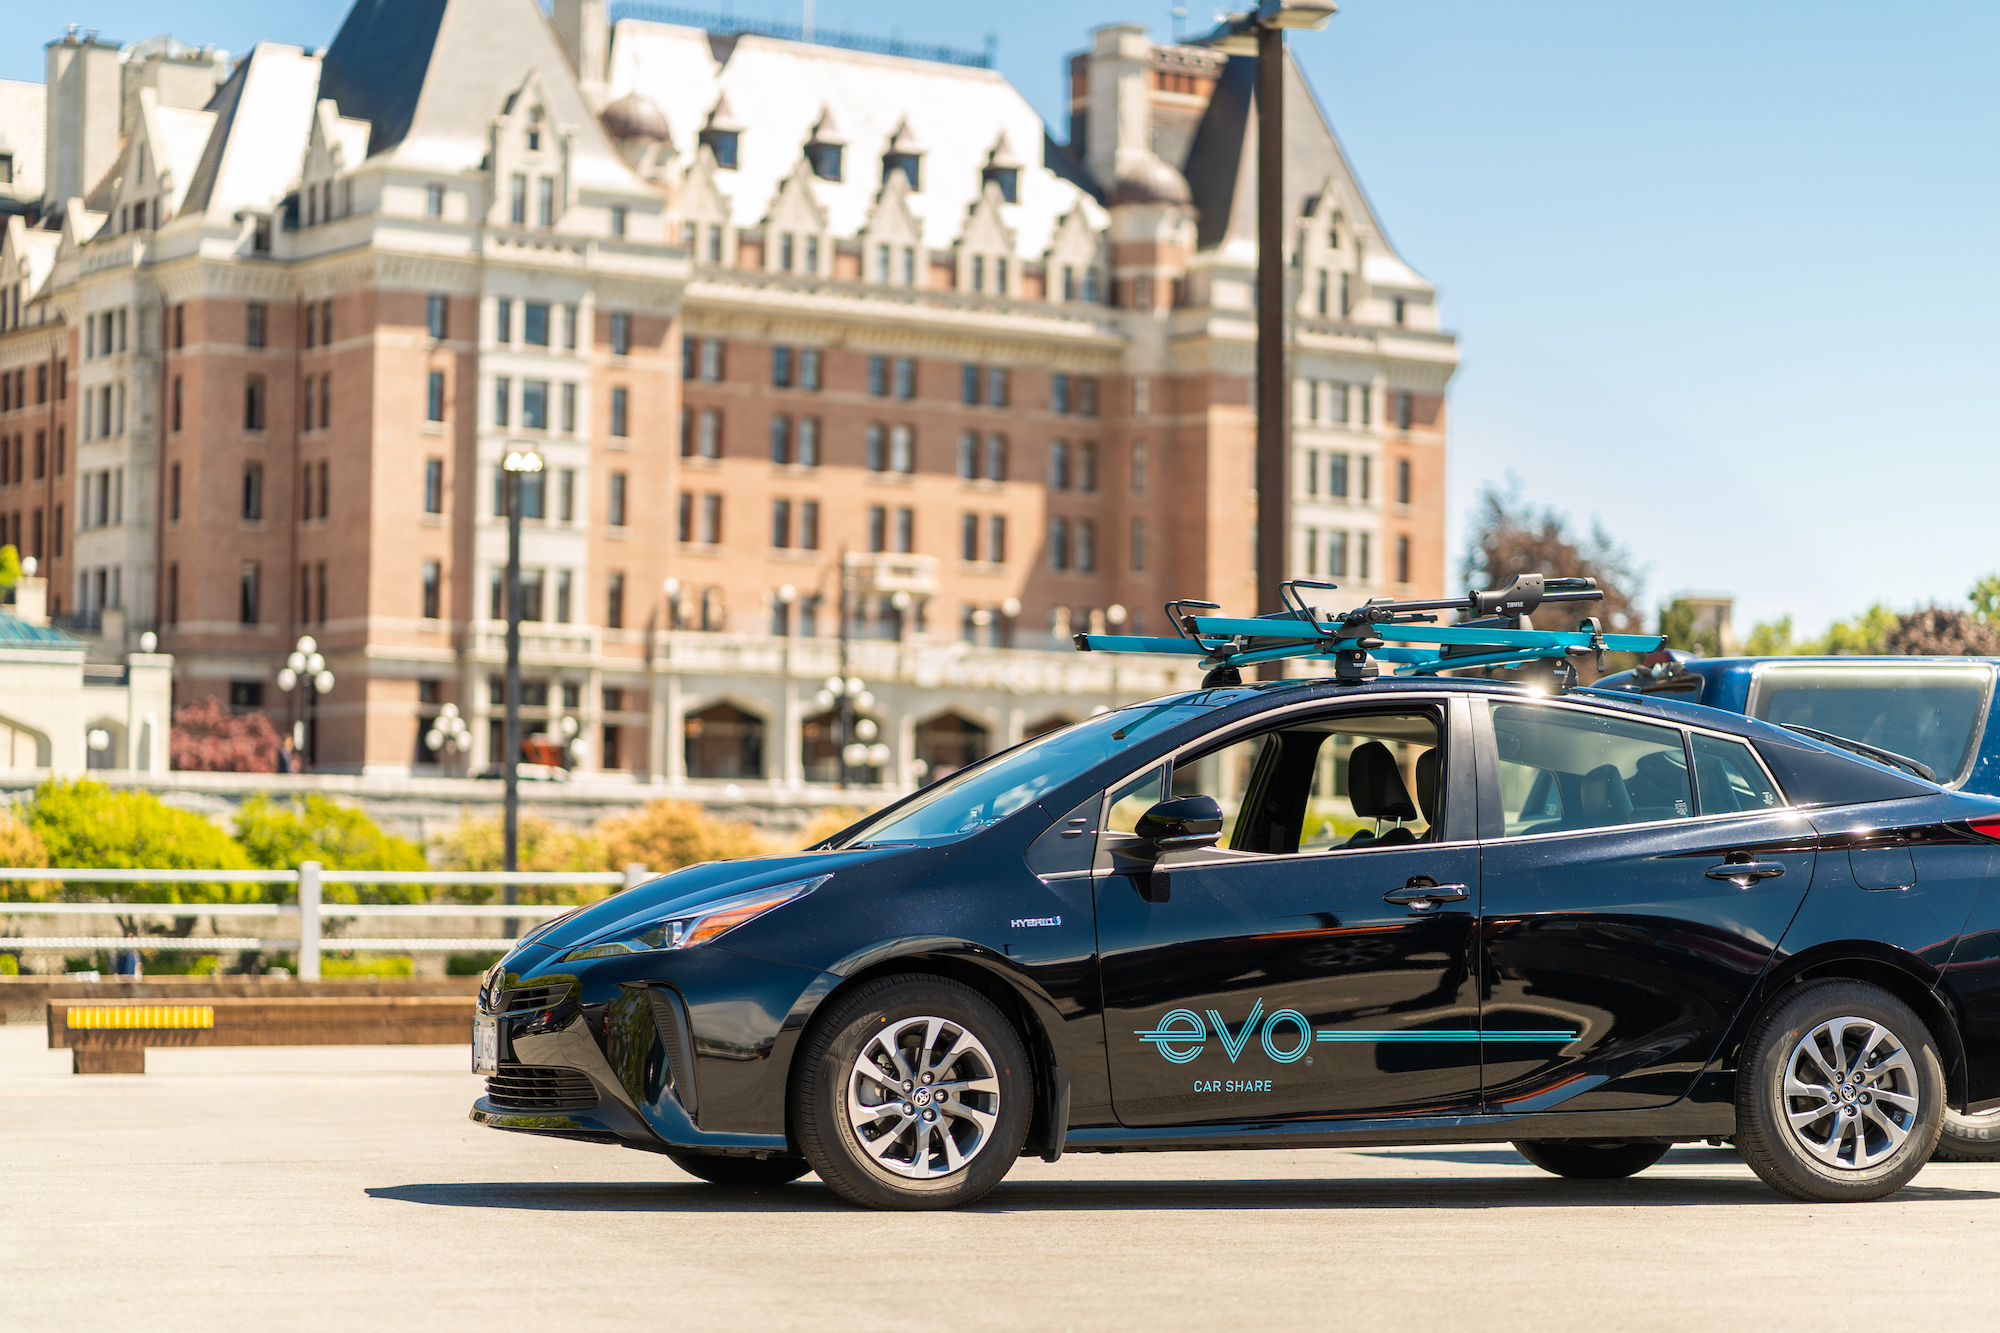 Car Wars: Evo joins the movement to add more mobility options in Victoria